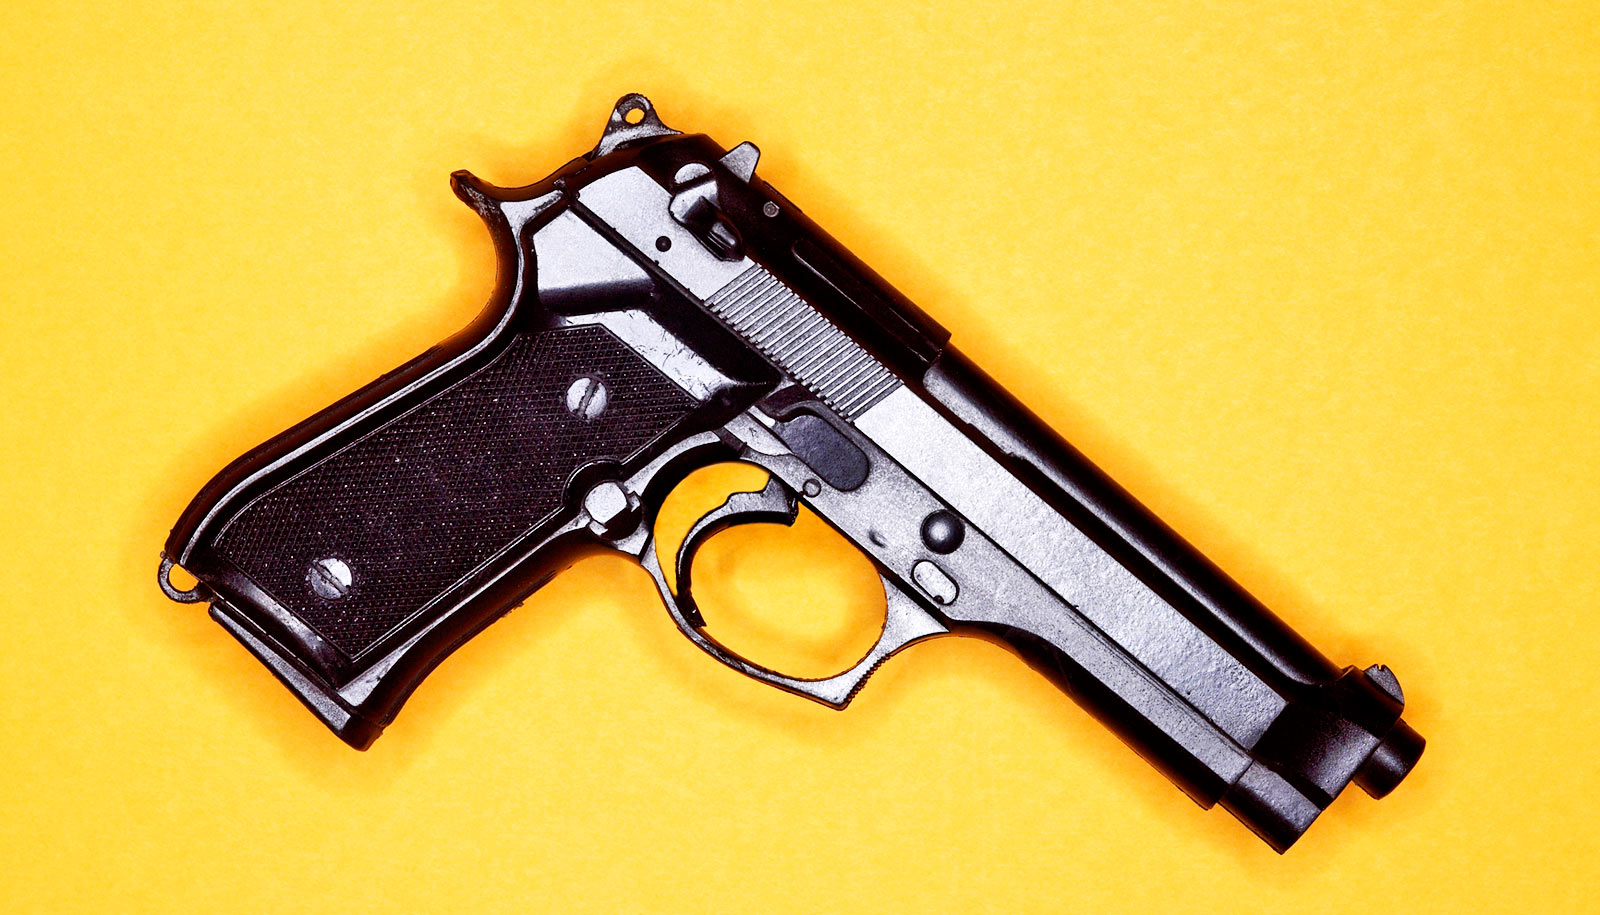 Permissive gun laws linked to higher homicide rates - Futurity